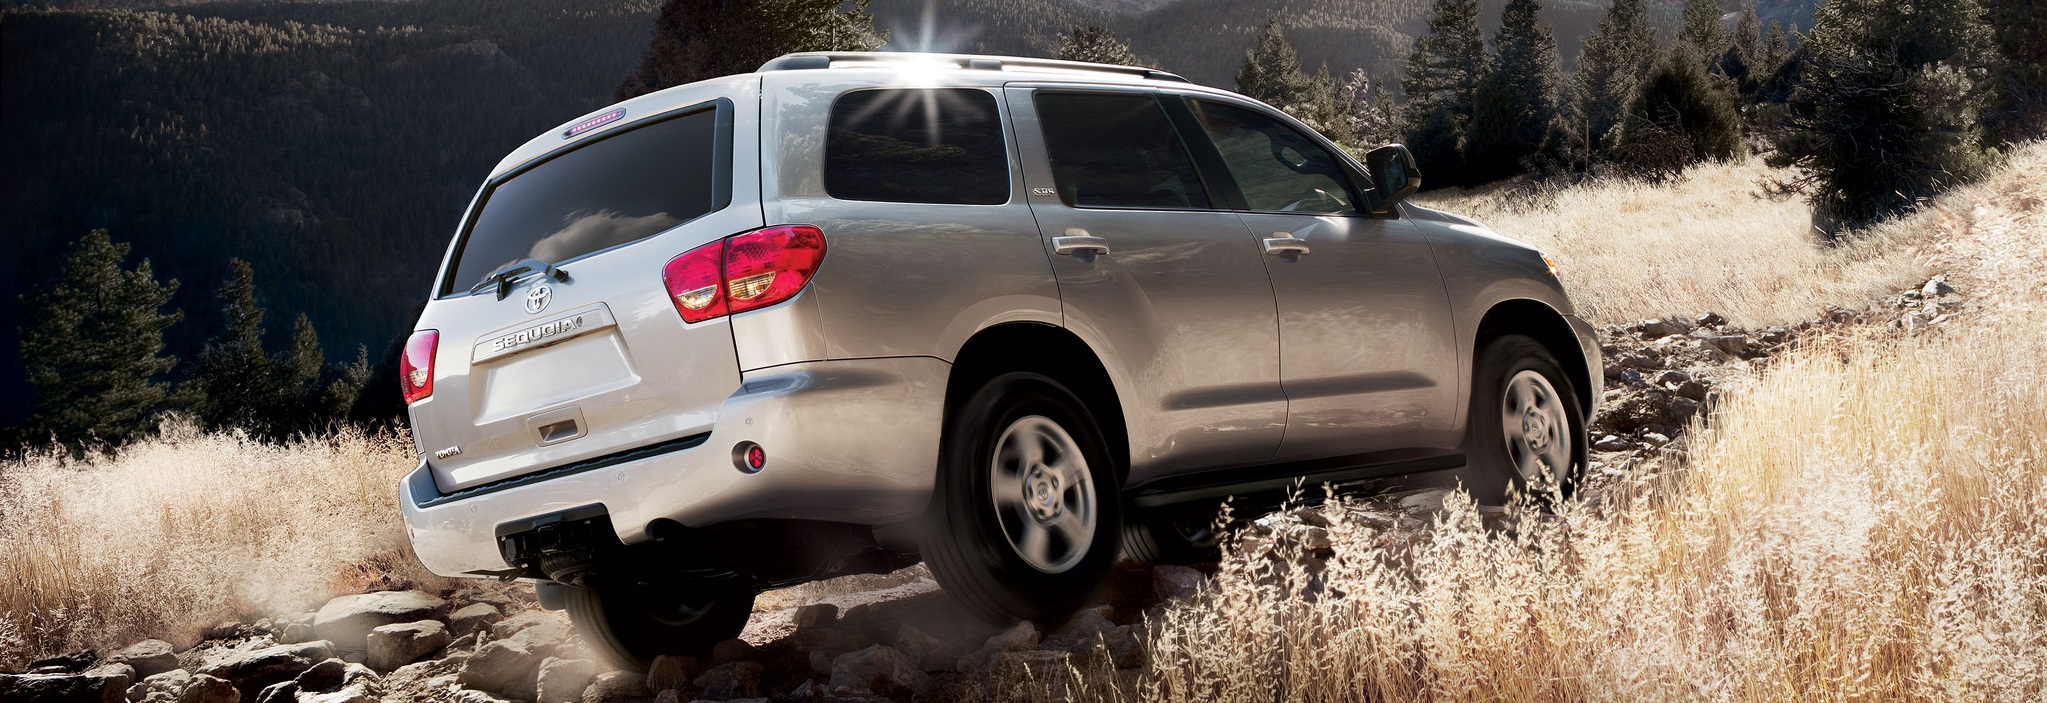 2016 Toyota Sequoia at Toyota of Gastonia near Charlotte NC